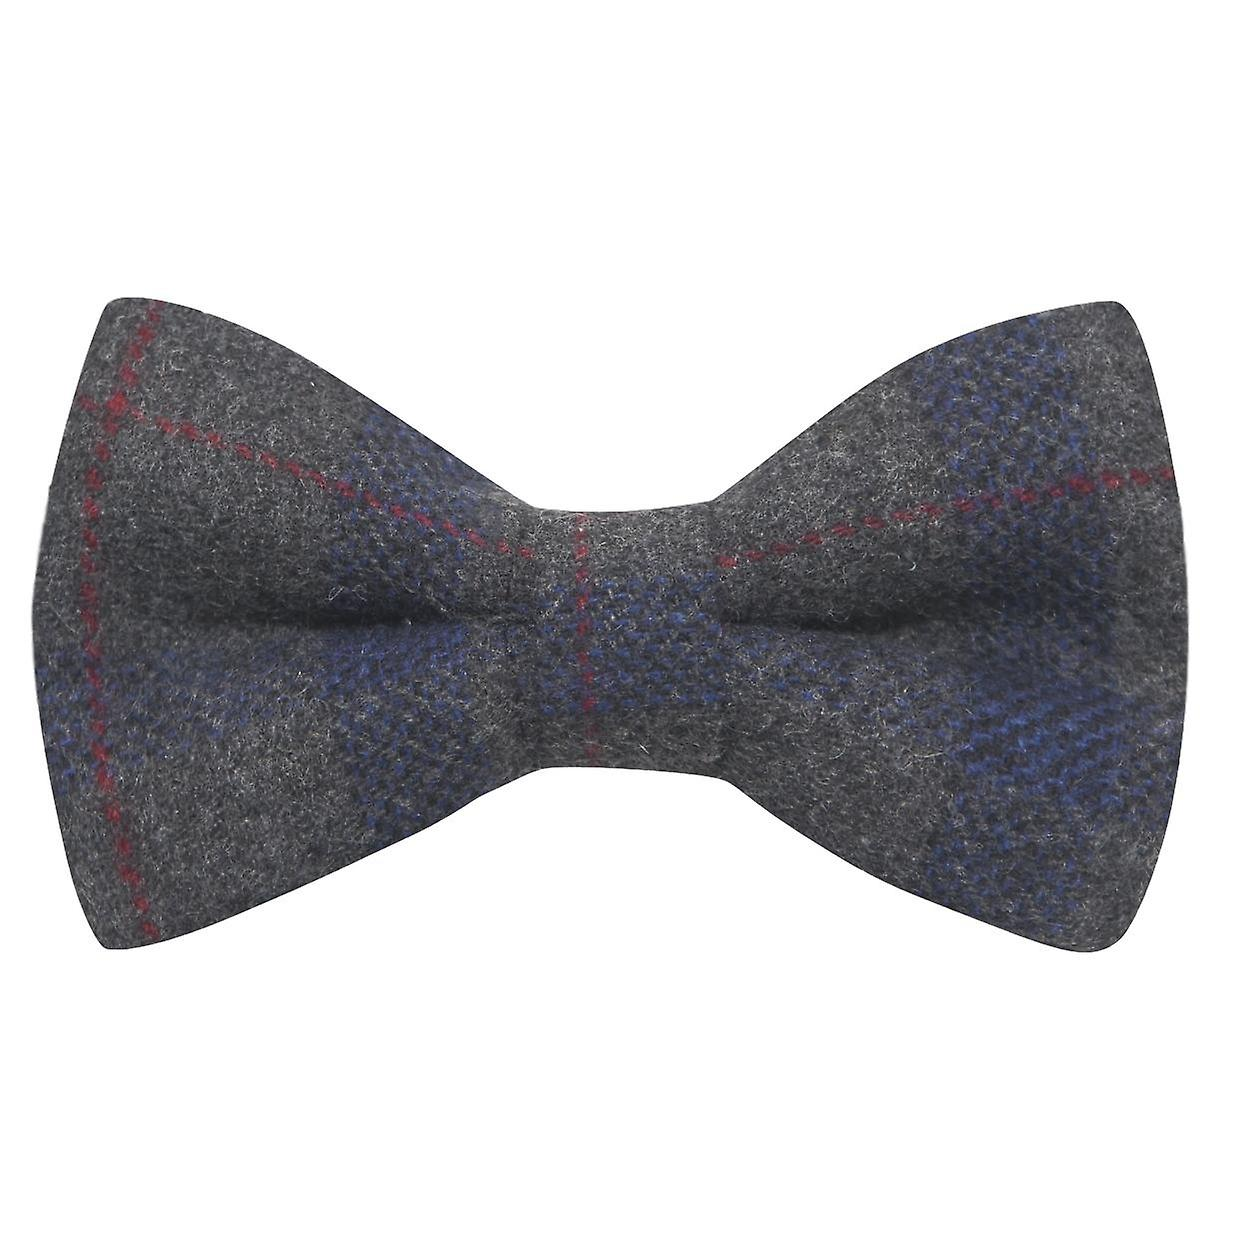 Grey & Blue Check Bow Tie, Tweed, Tartan, Plaid